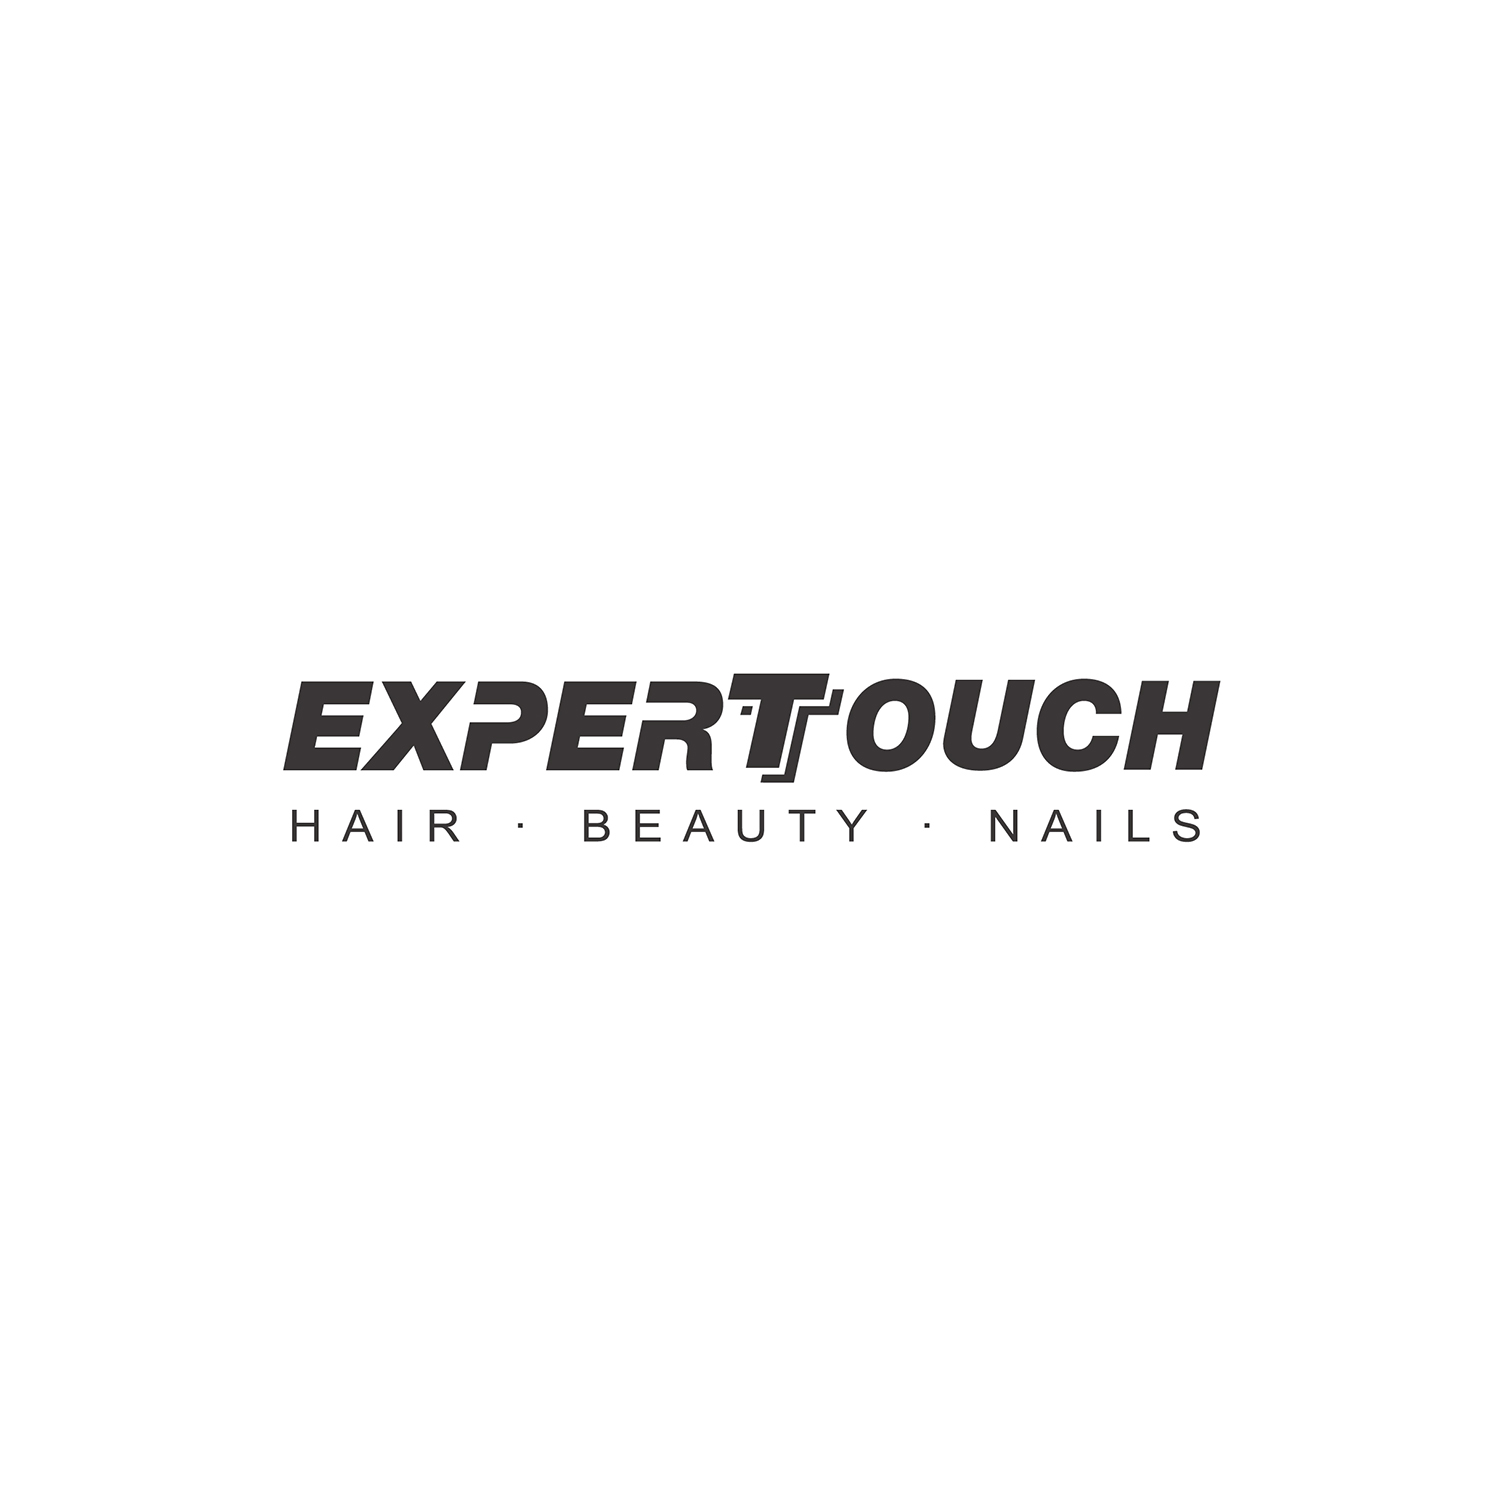 ExperTouch Hair.Beauty.Nails